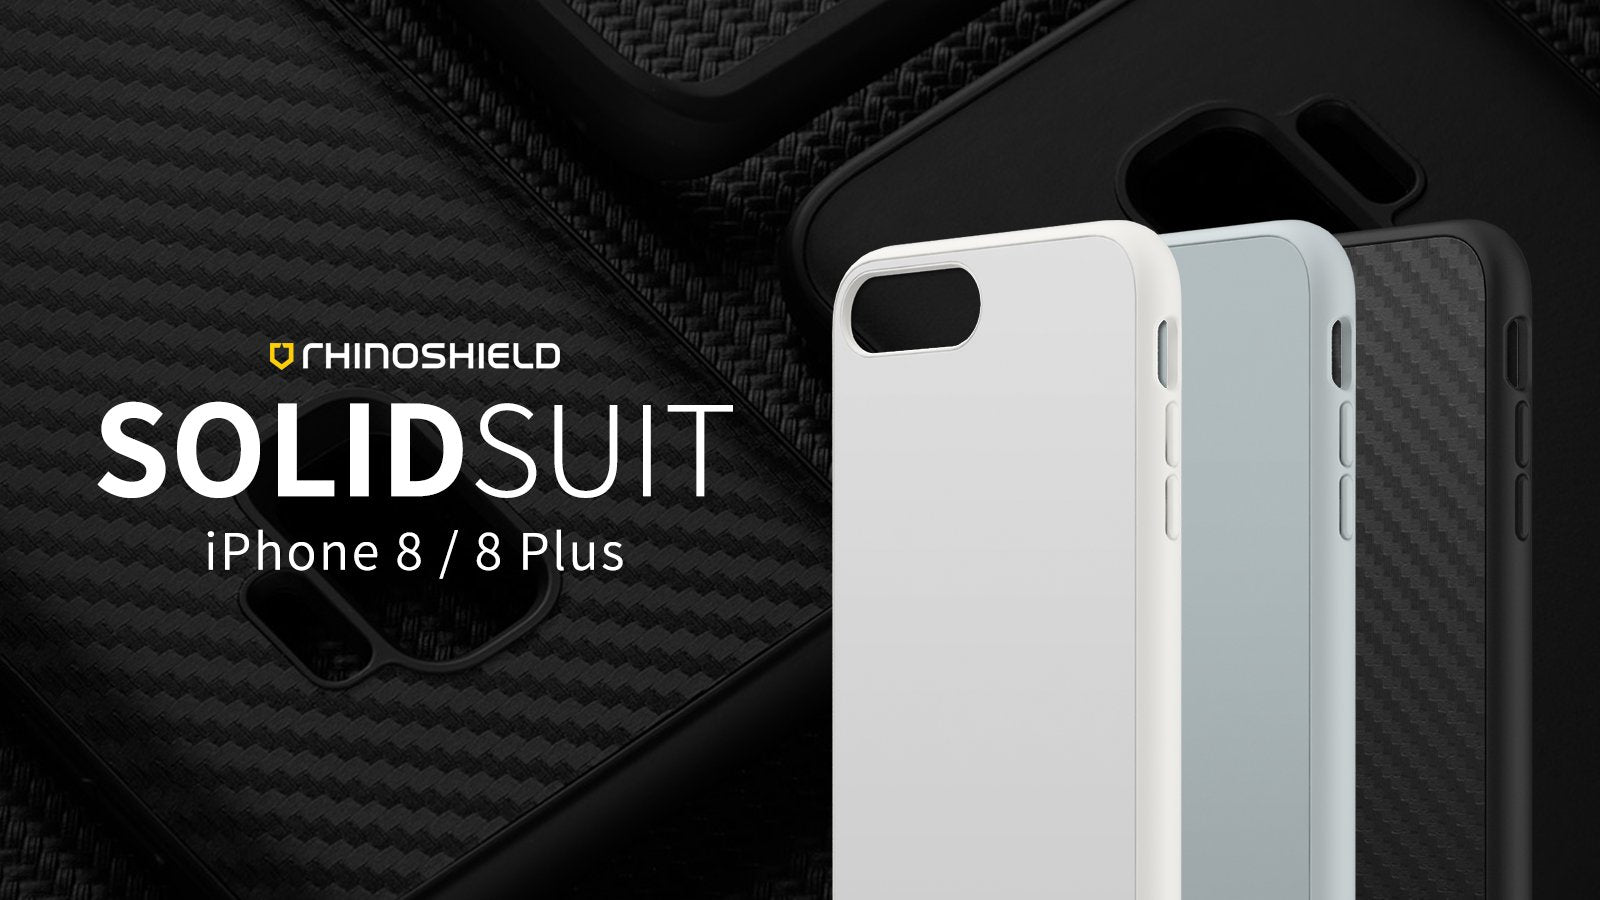 Rhino Shield SOLIDSUIT Premium Rugged Case - iPhone 8 Plus / 7 Plus